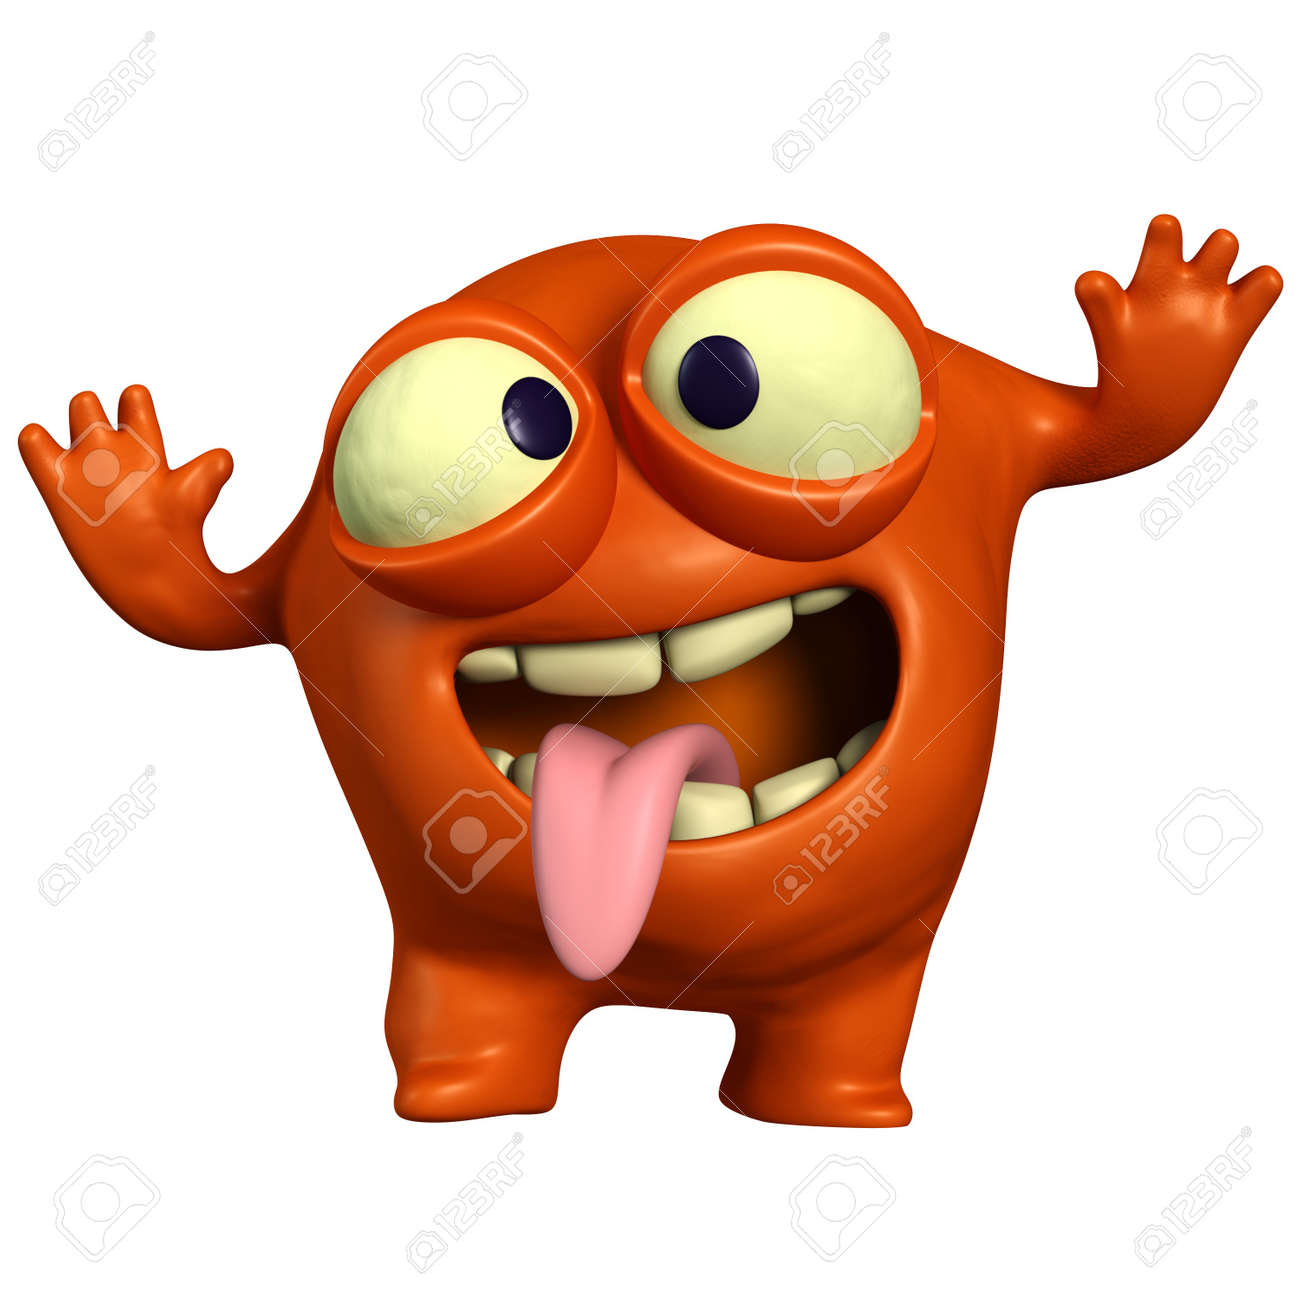 D cartoon crazy monster stock photo picture and royalty free